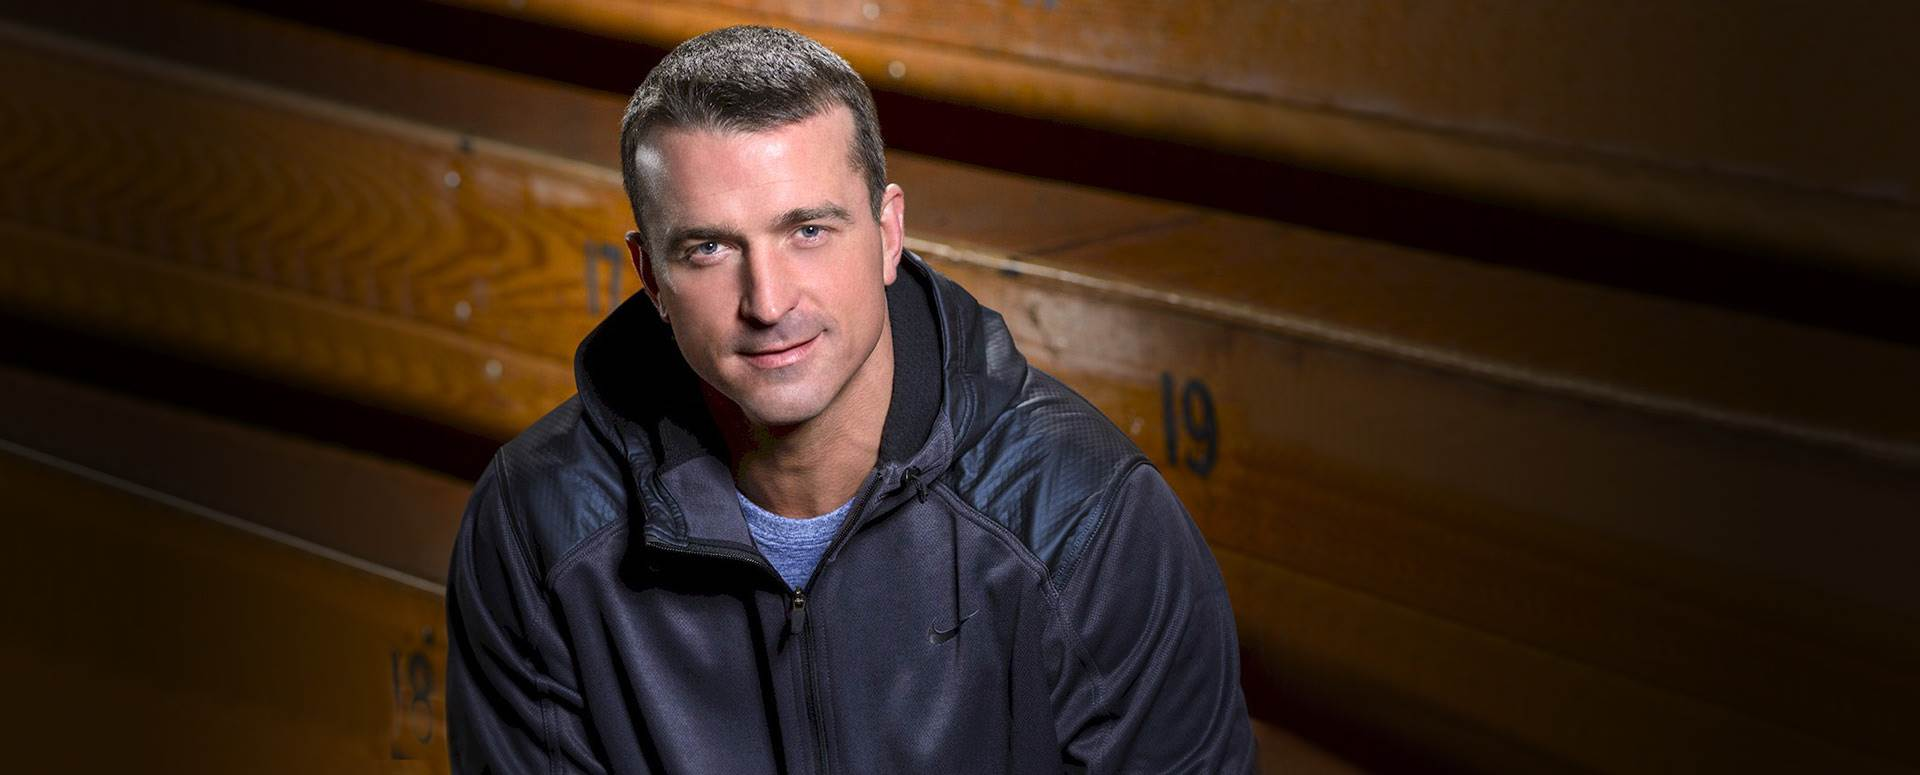 chris herren Eventbrite - rockville centre coalition for youth presents rebound - the chris herren story - tuesday, march 20, 2018 at south side high school, rockville centre, ny.